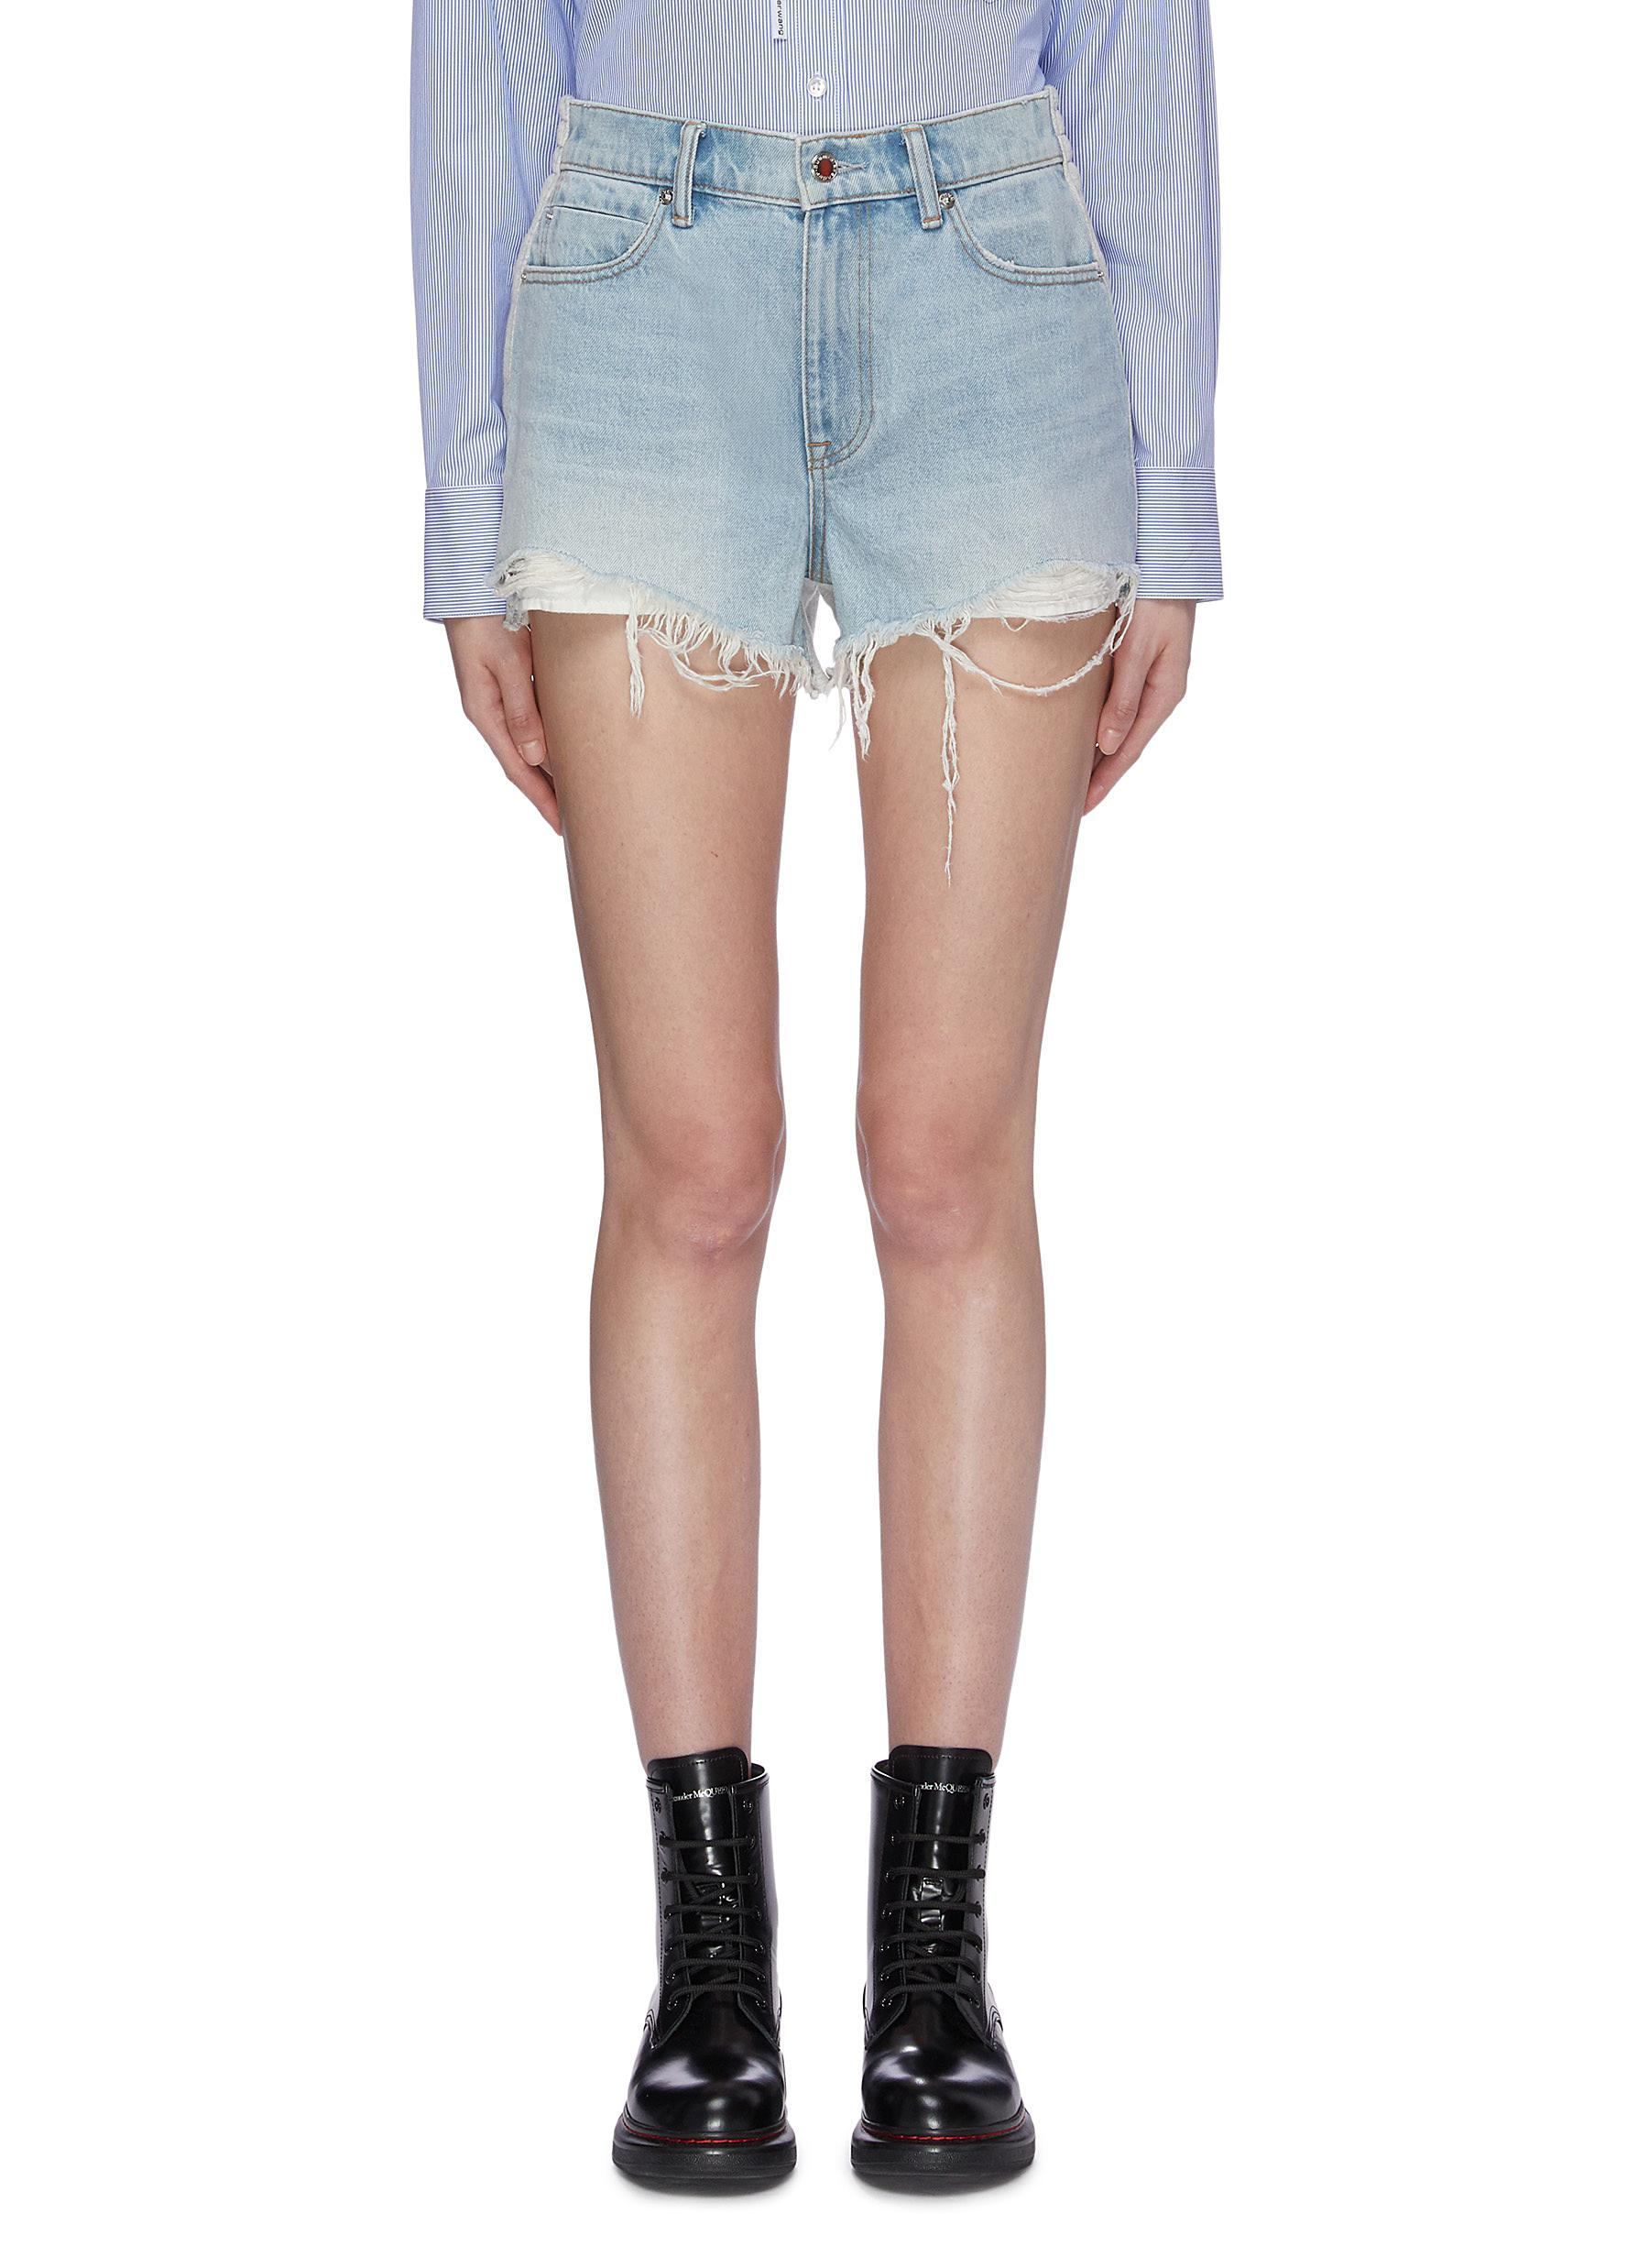 Bite Clash sweatshirt back distressed denim shorts by Alexanderwang